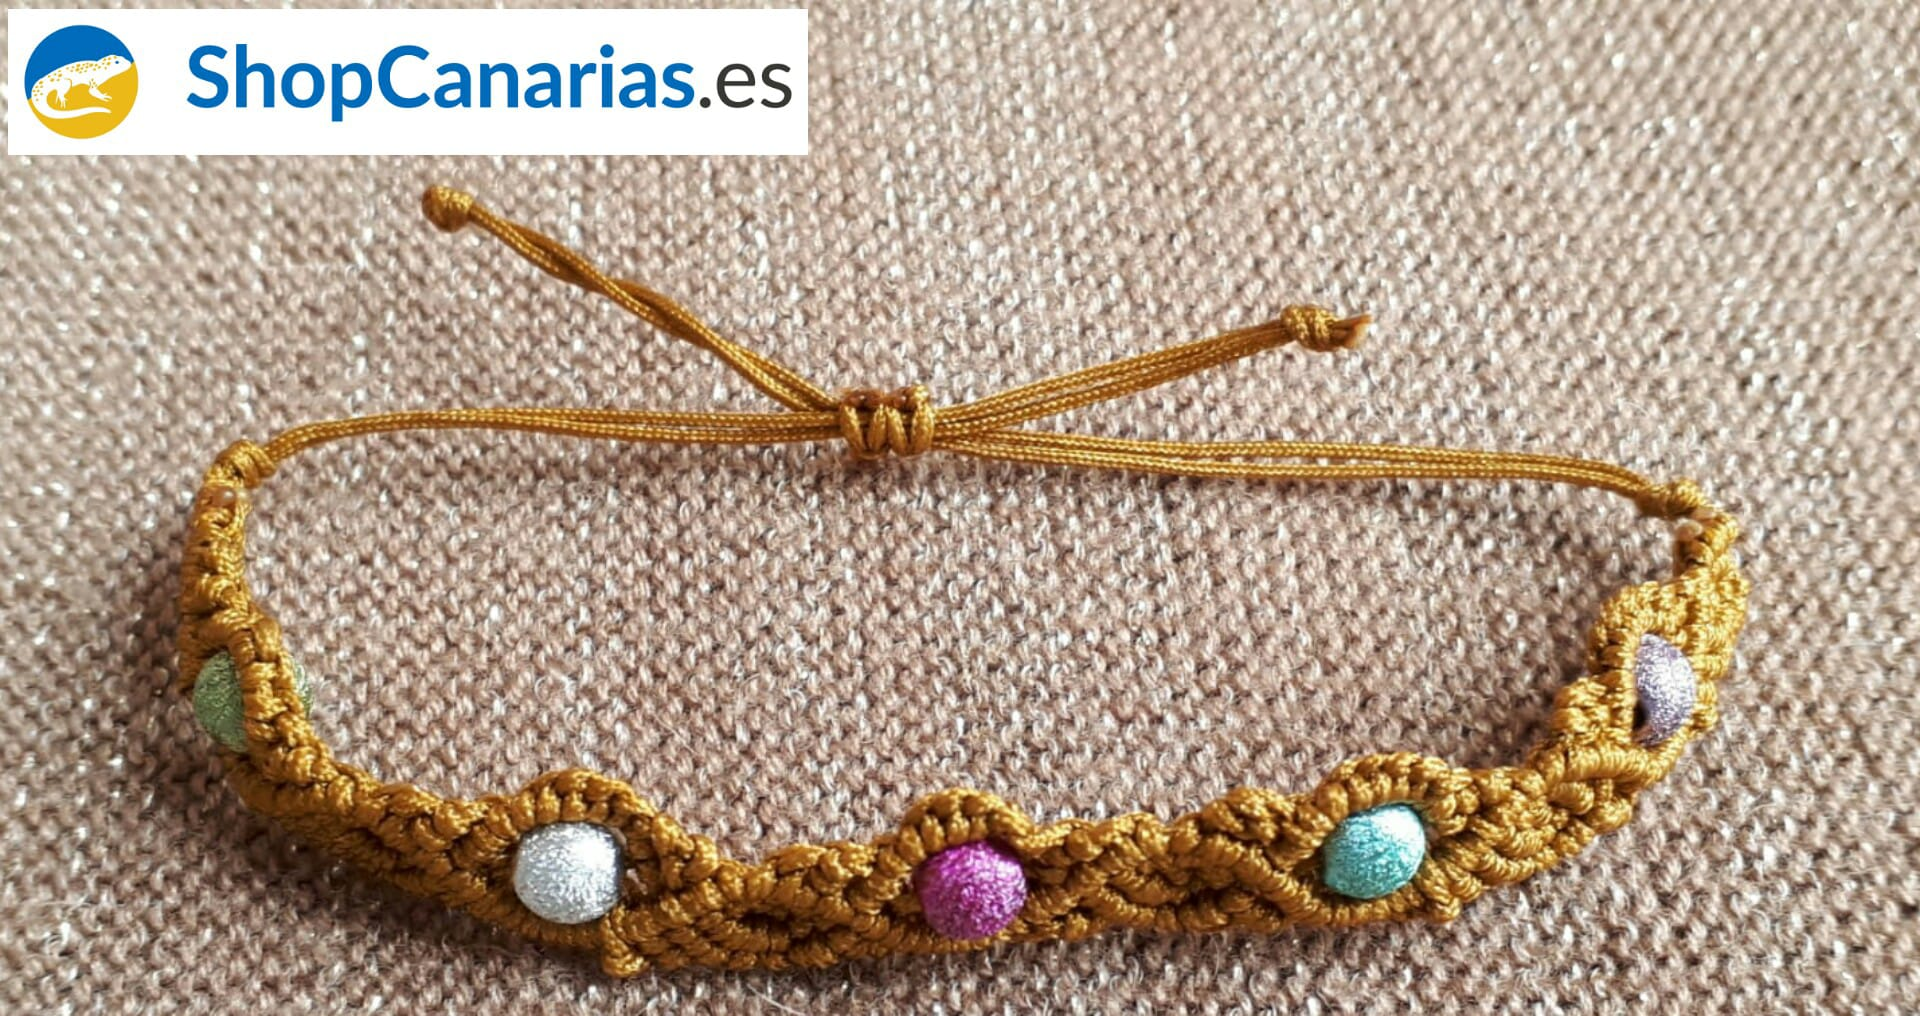 Pulsera Exclusiva Macramé ShopCanarias.es Cinco Colores